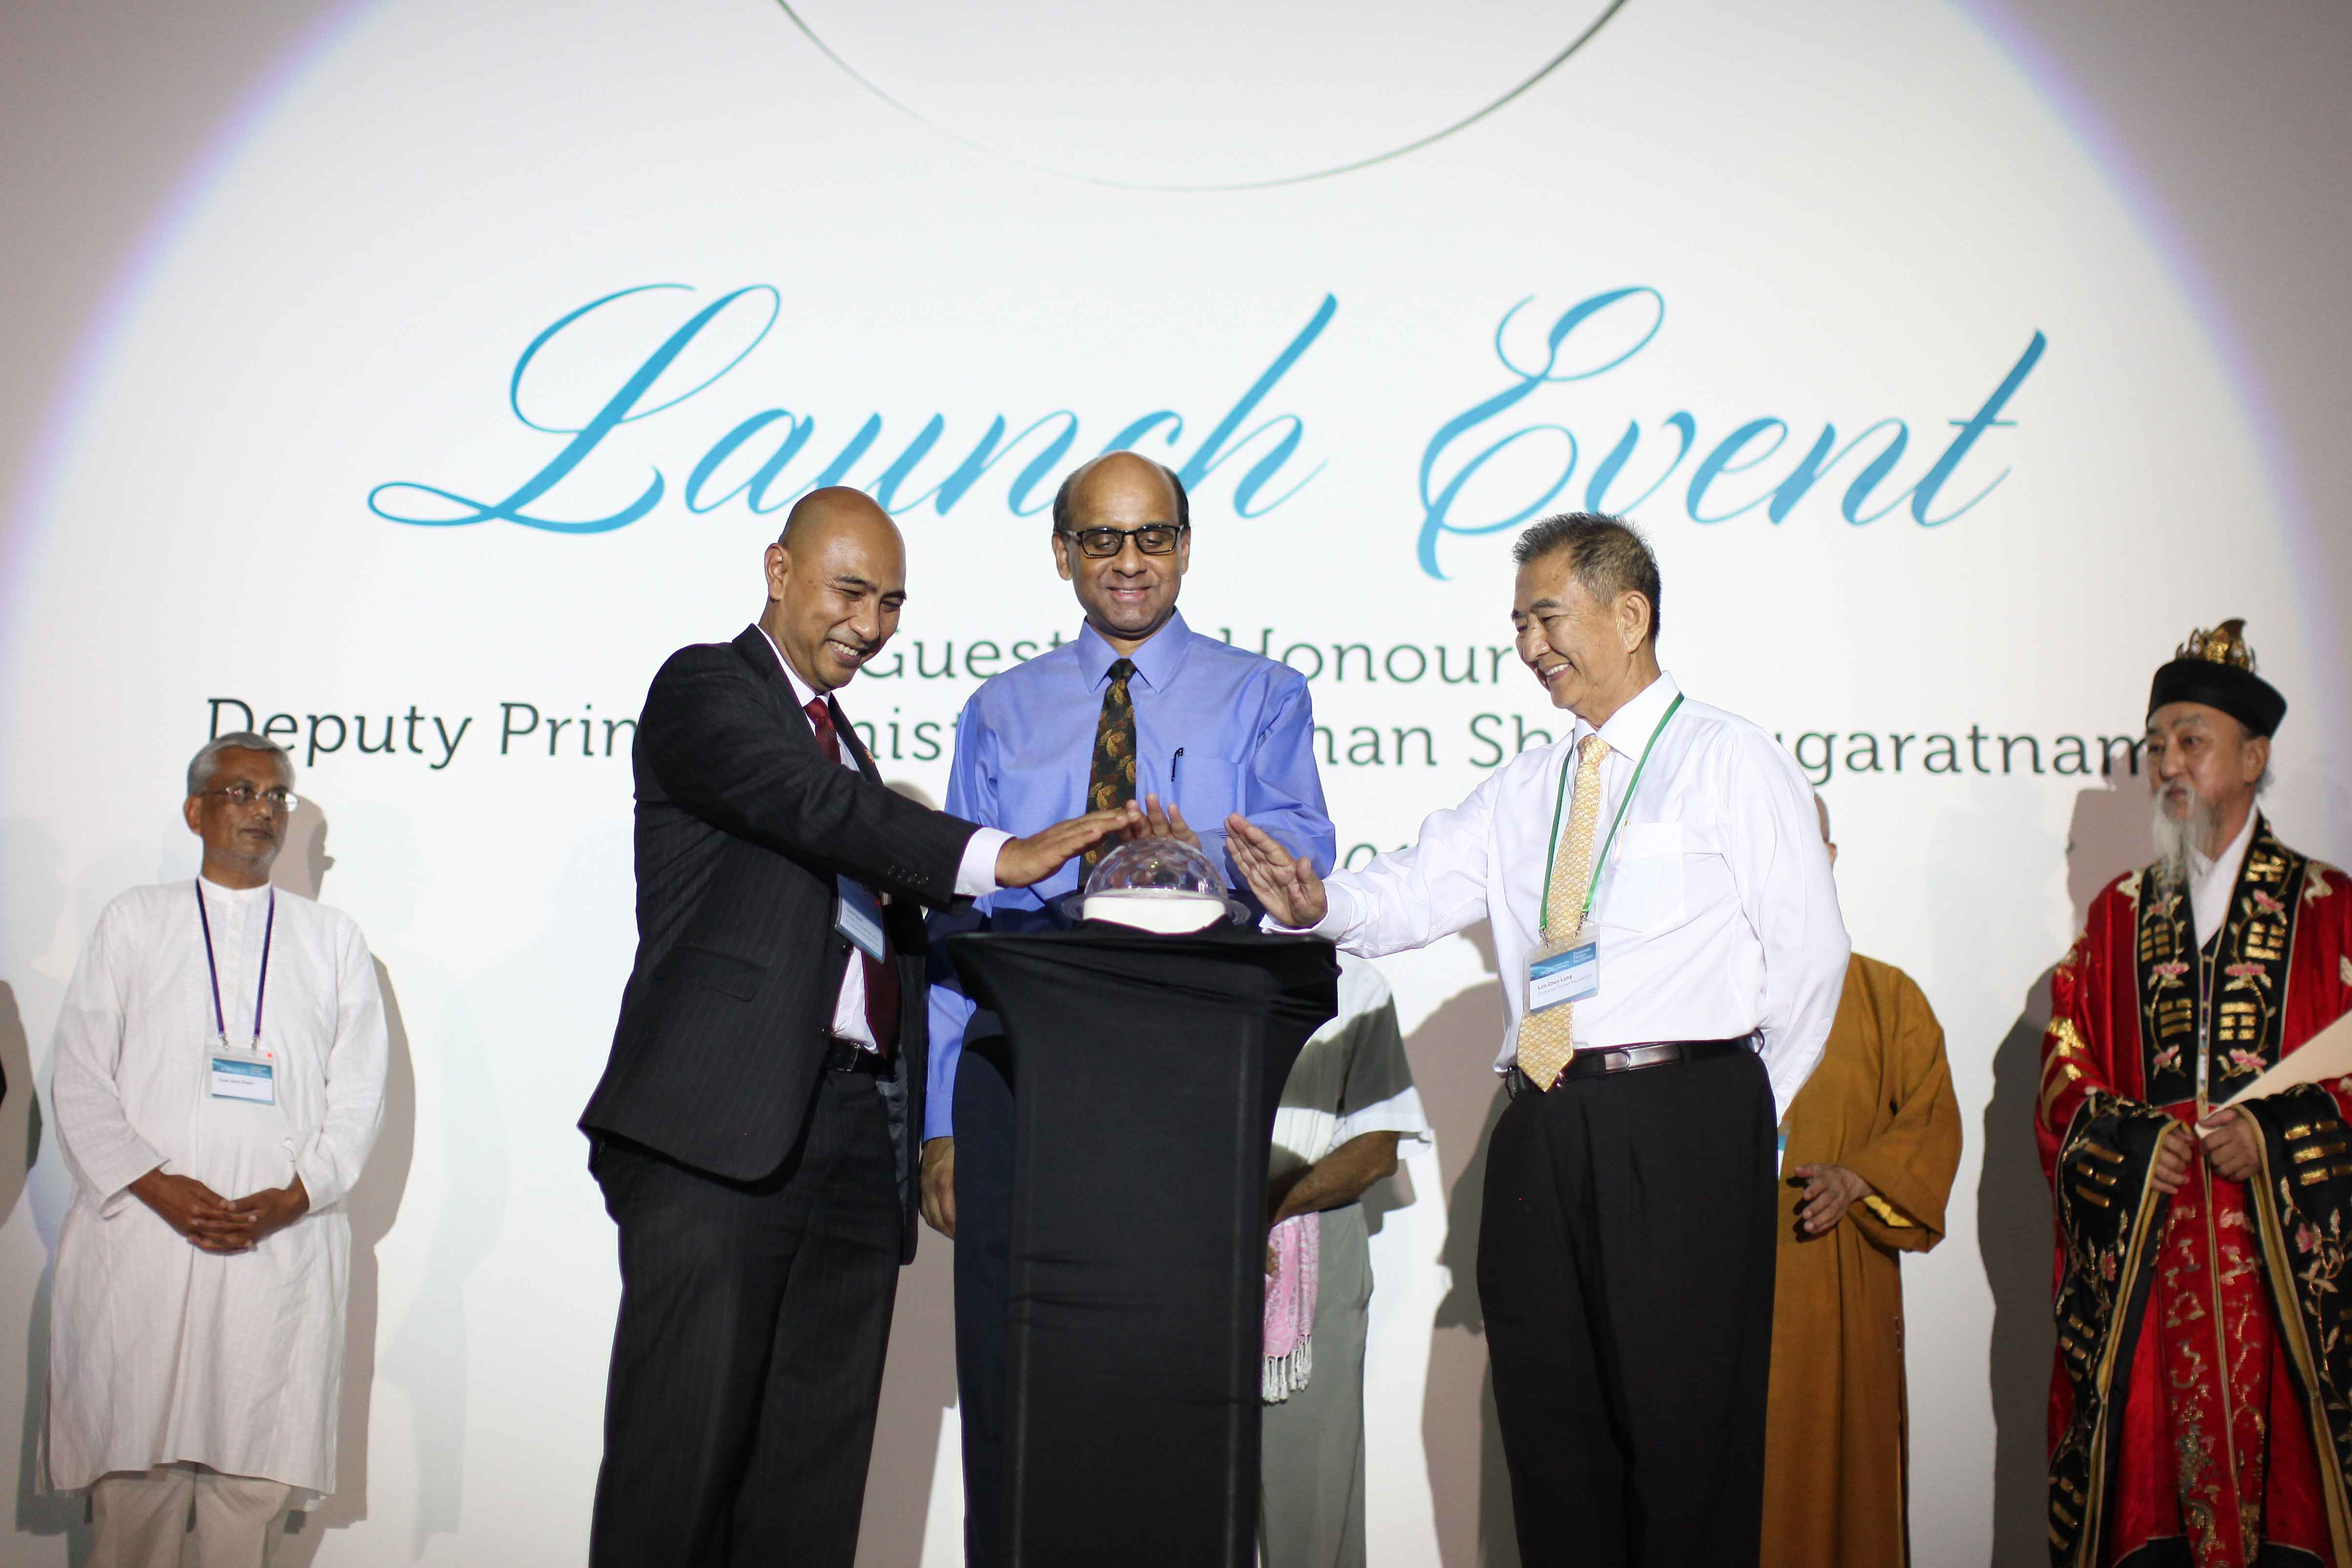 CCF-Launch-(01-11-2014)-The-Straits-Times-i